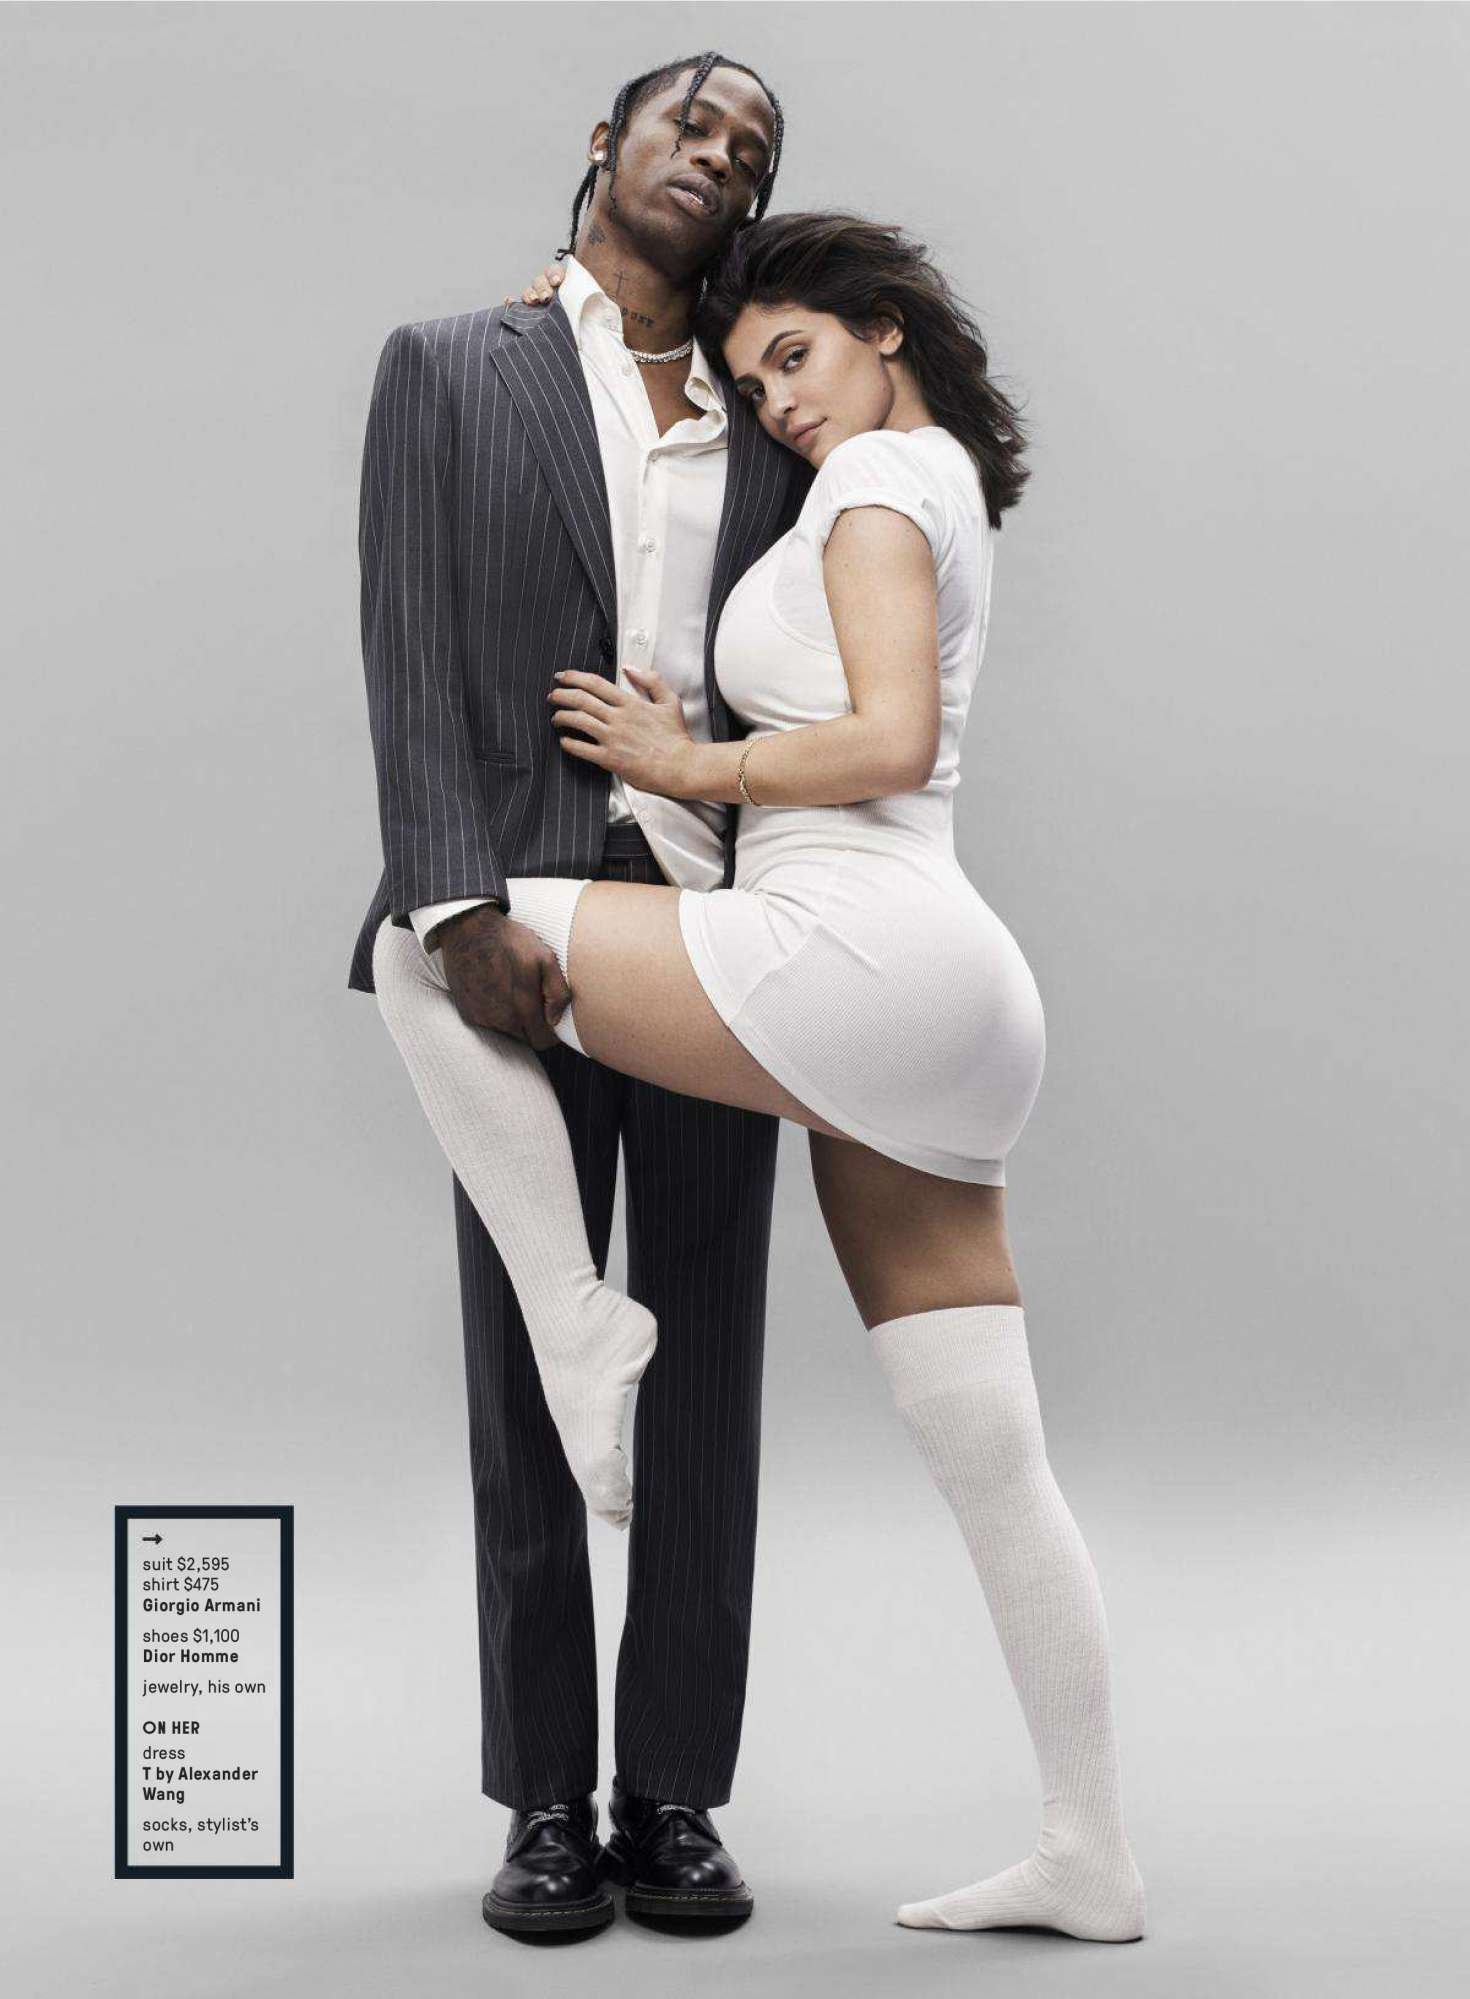 Kylie Jenner for GQ Magazine (August 2018)